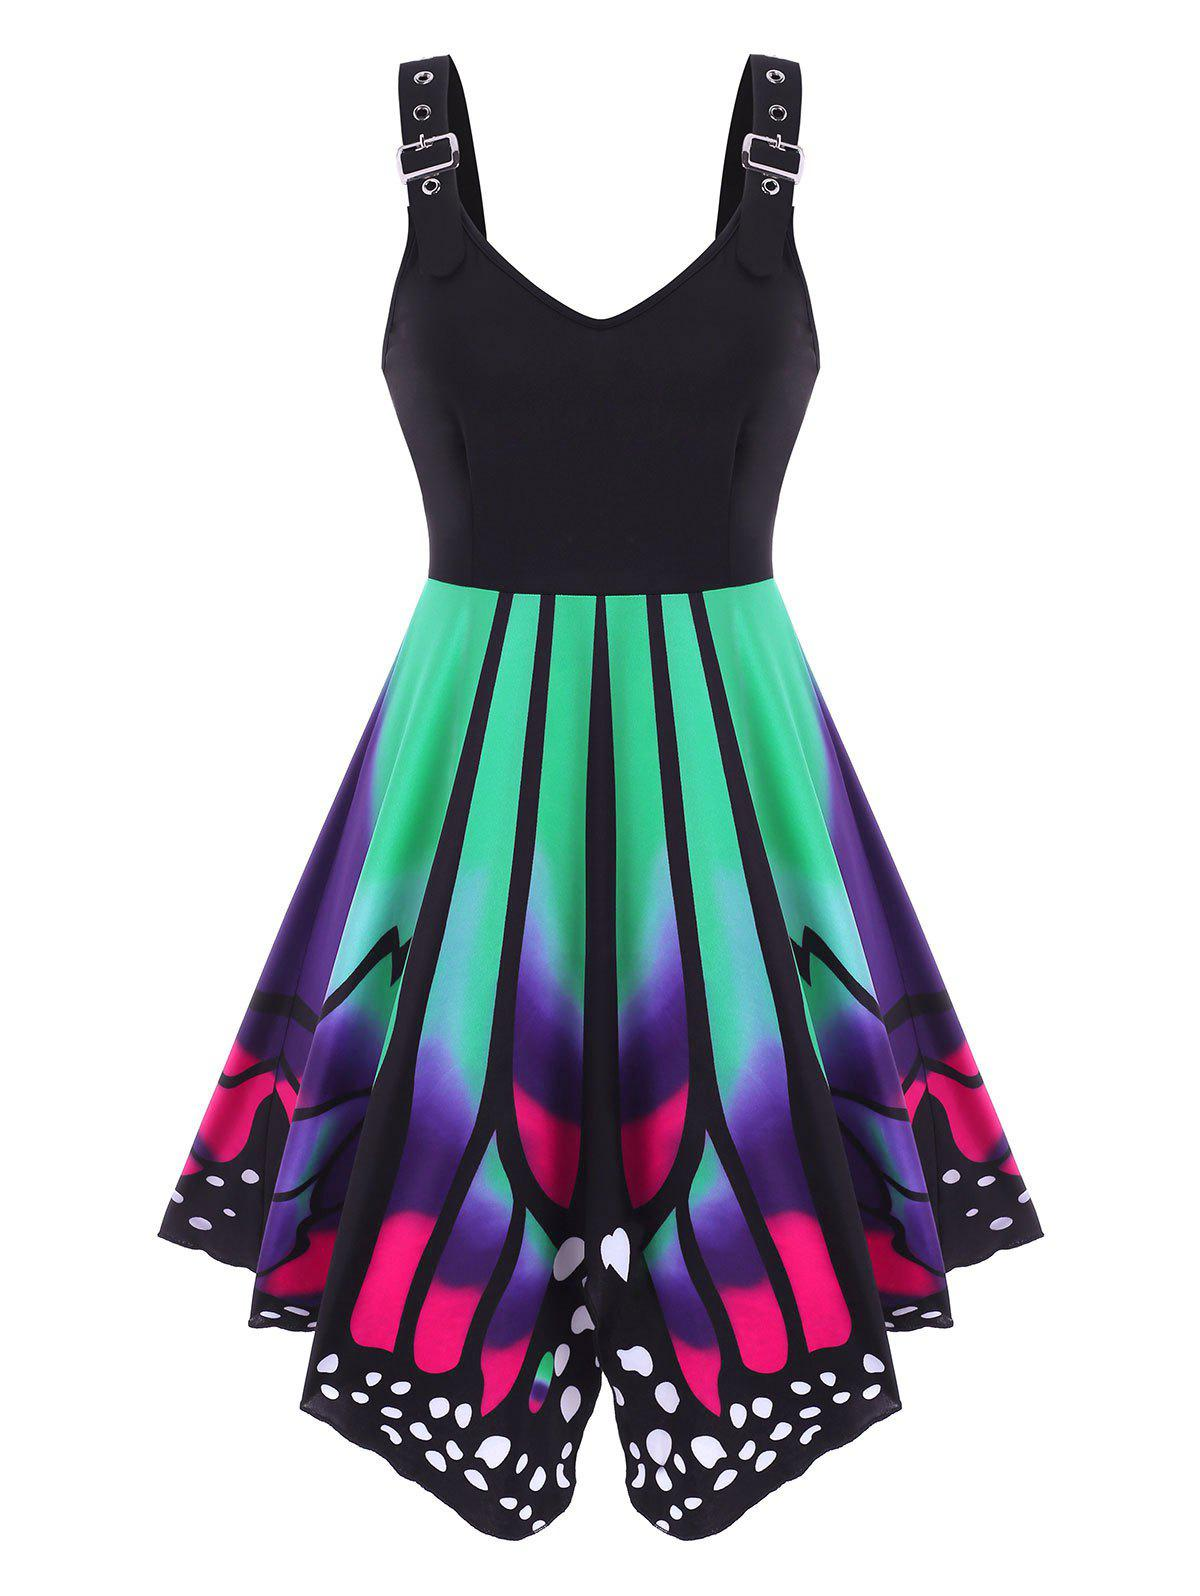 Buckled Lace-up Butterfly Print Dress - multicolor S